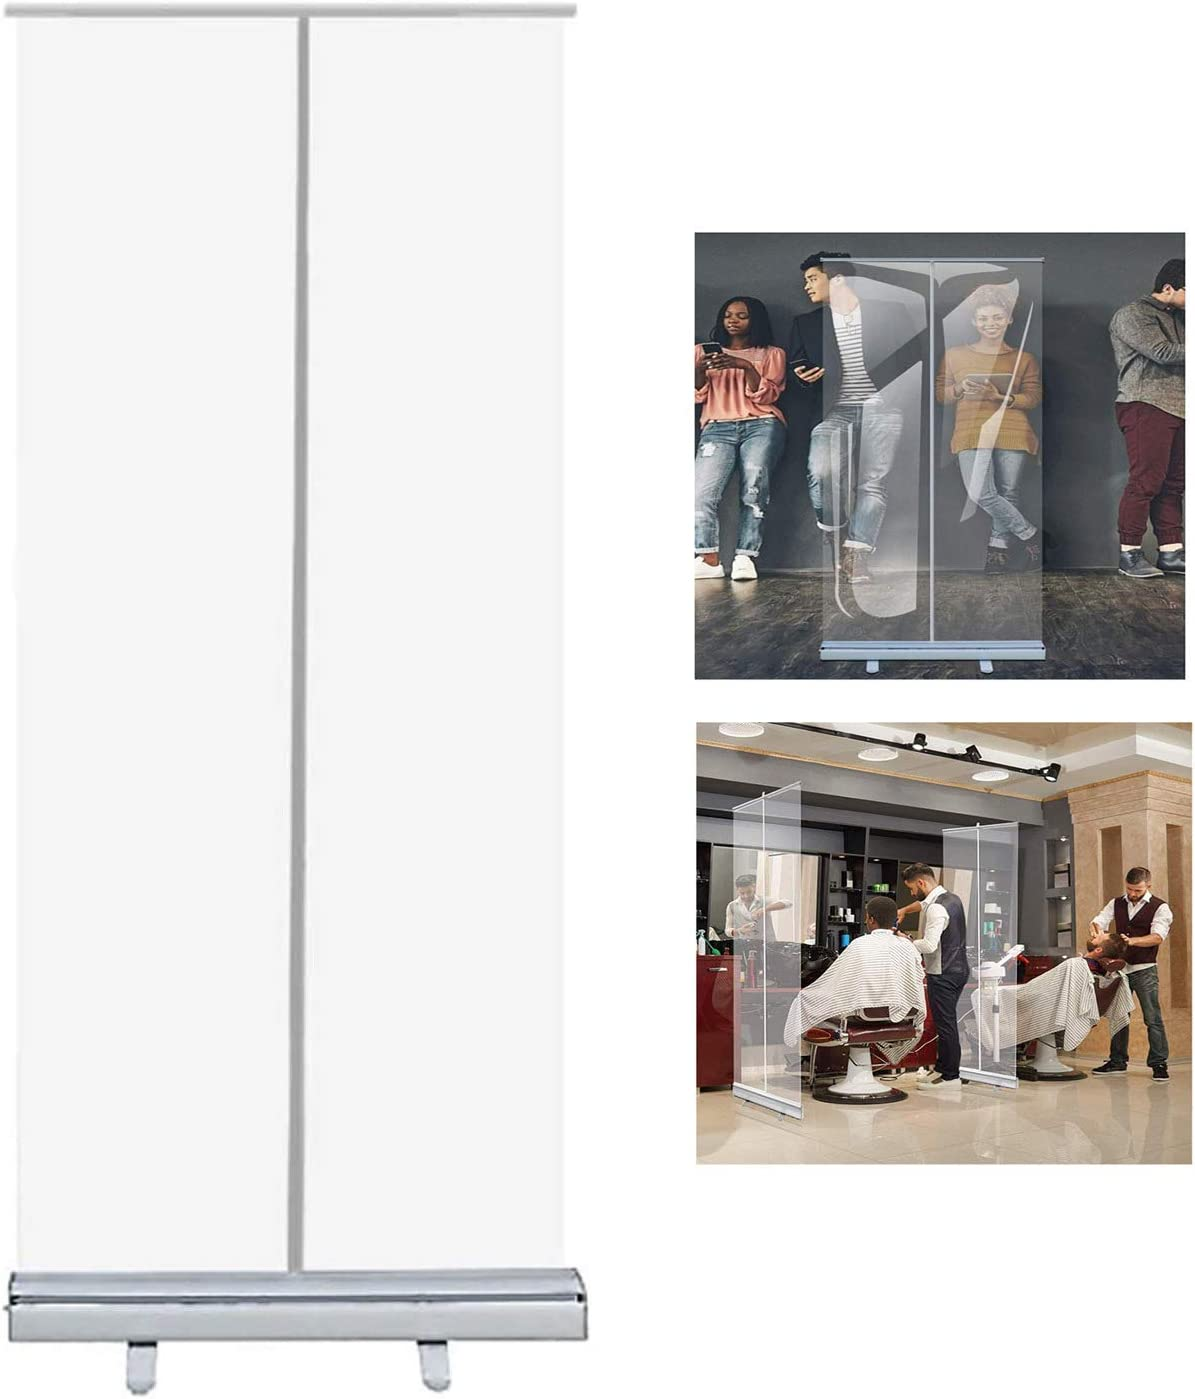 Size : 80x200cm OESFL Floor Standing Sneeze Guard,Protective Shield for Cafes,Retail Stores,Cashier,Receptionist,Portable Roll Up Banner Free Standing Isolation Barrier 31.49x70.86in